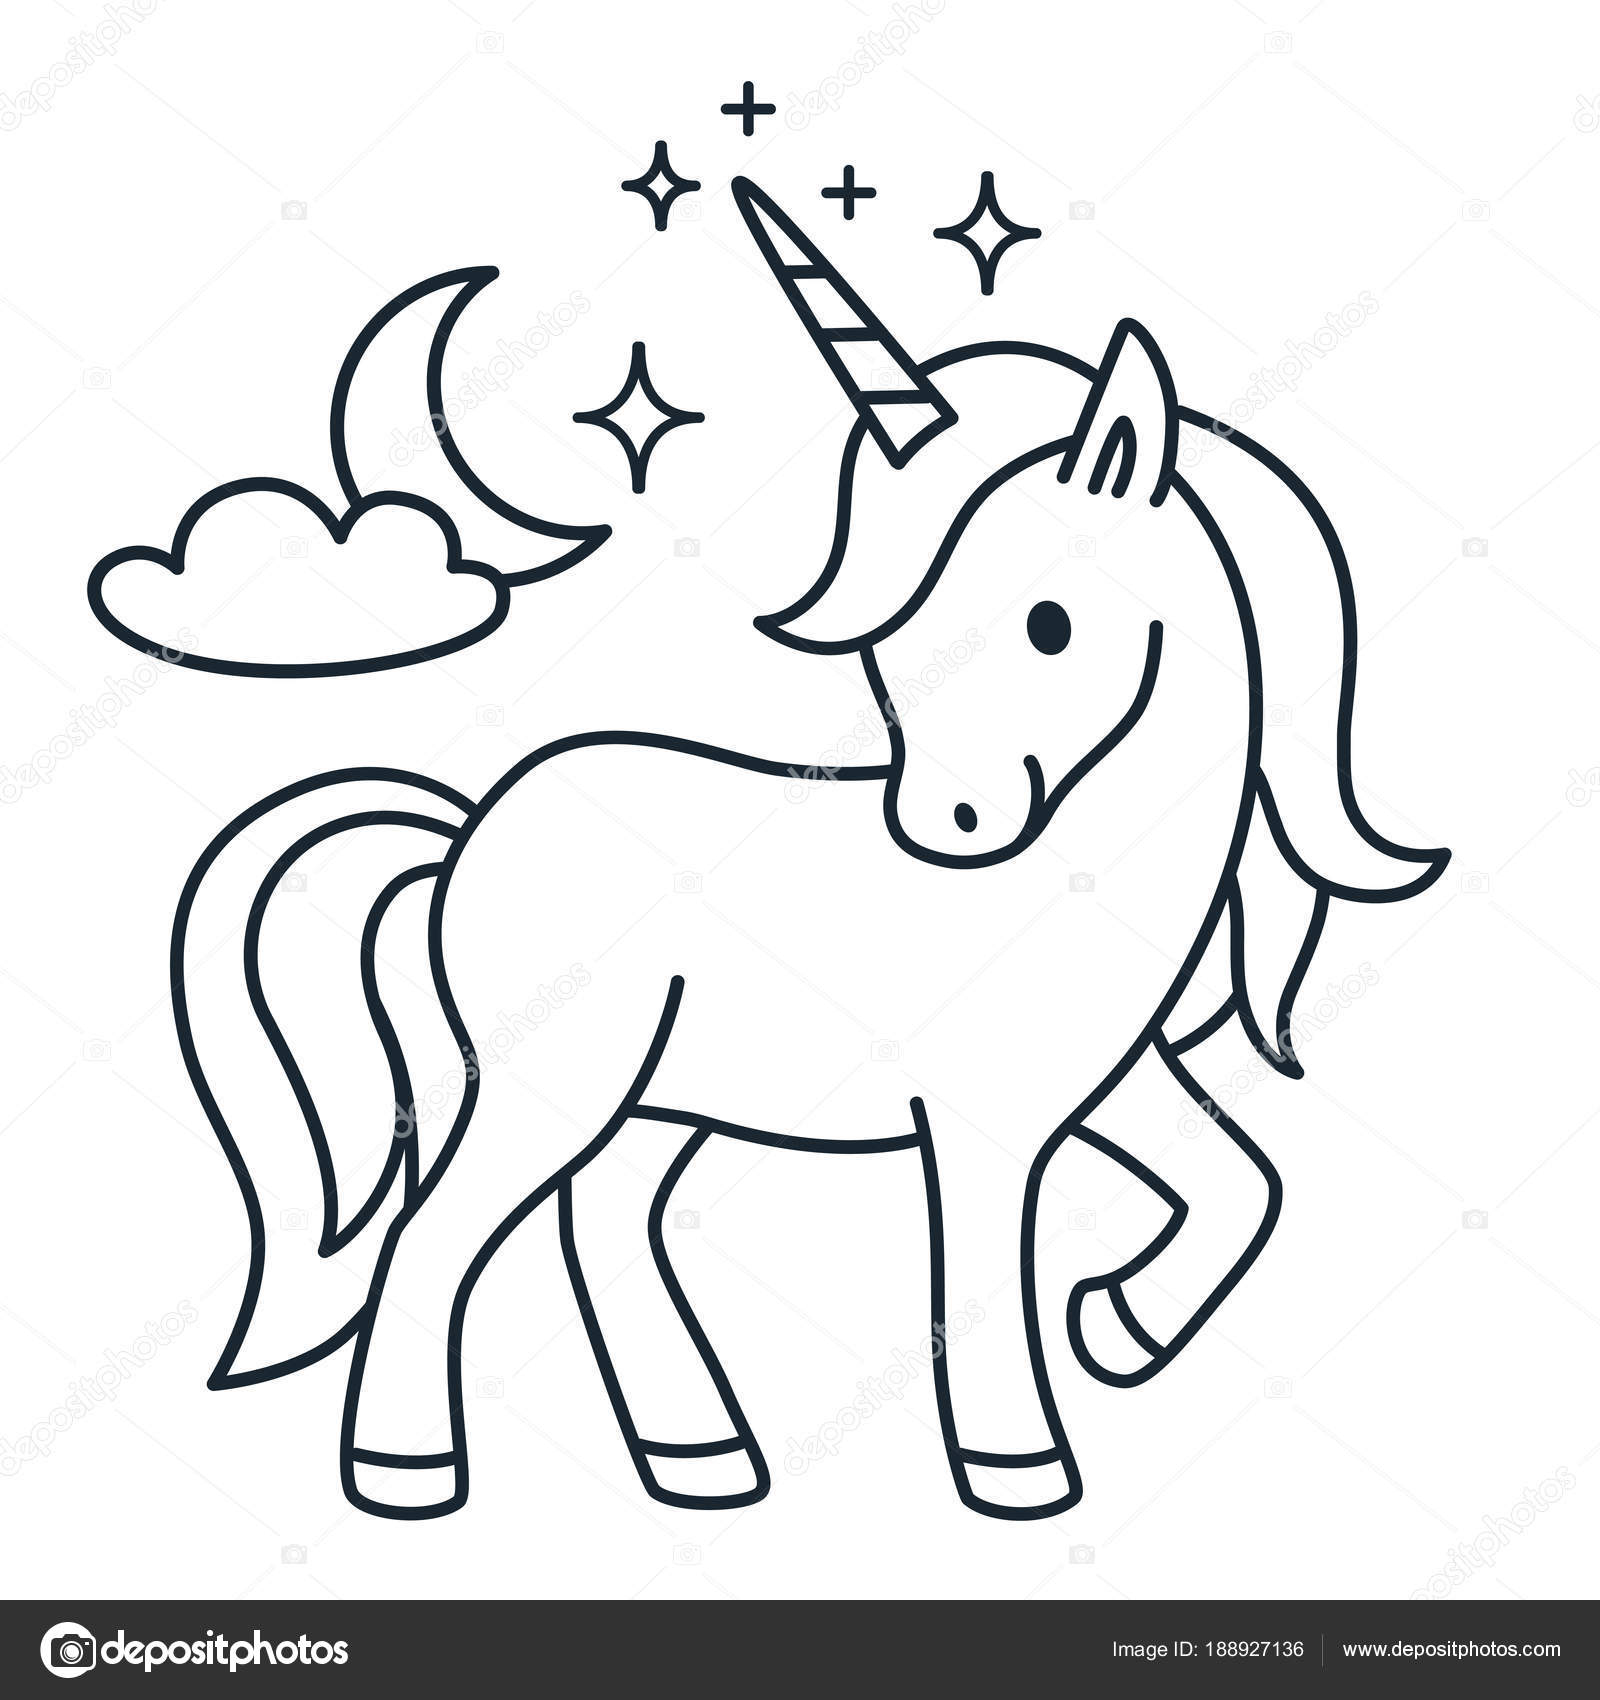 Cute Unicorn Simple Cartoon Vector Coloring Book Illustration S